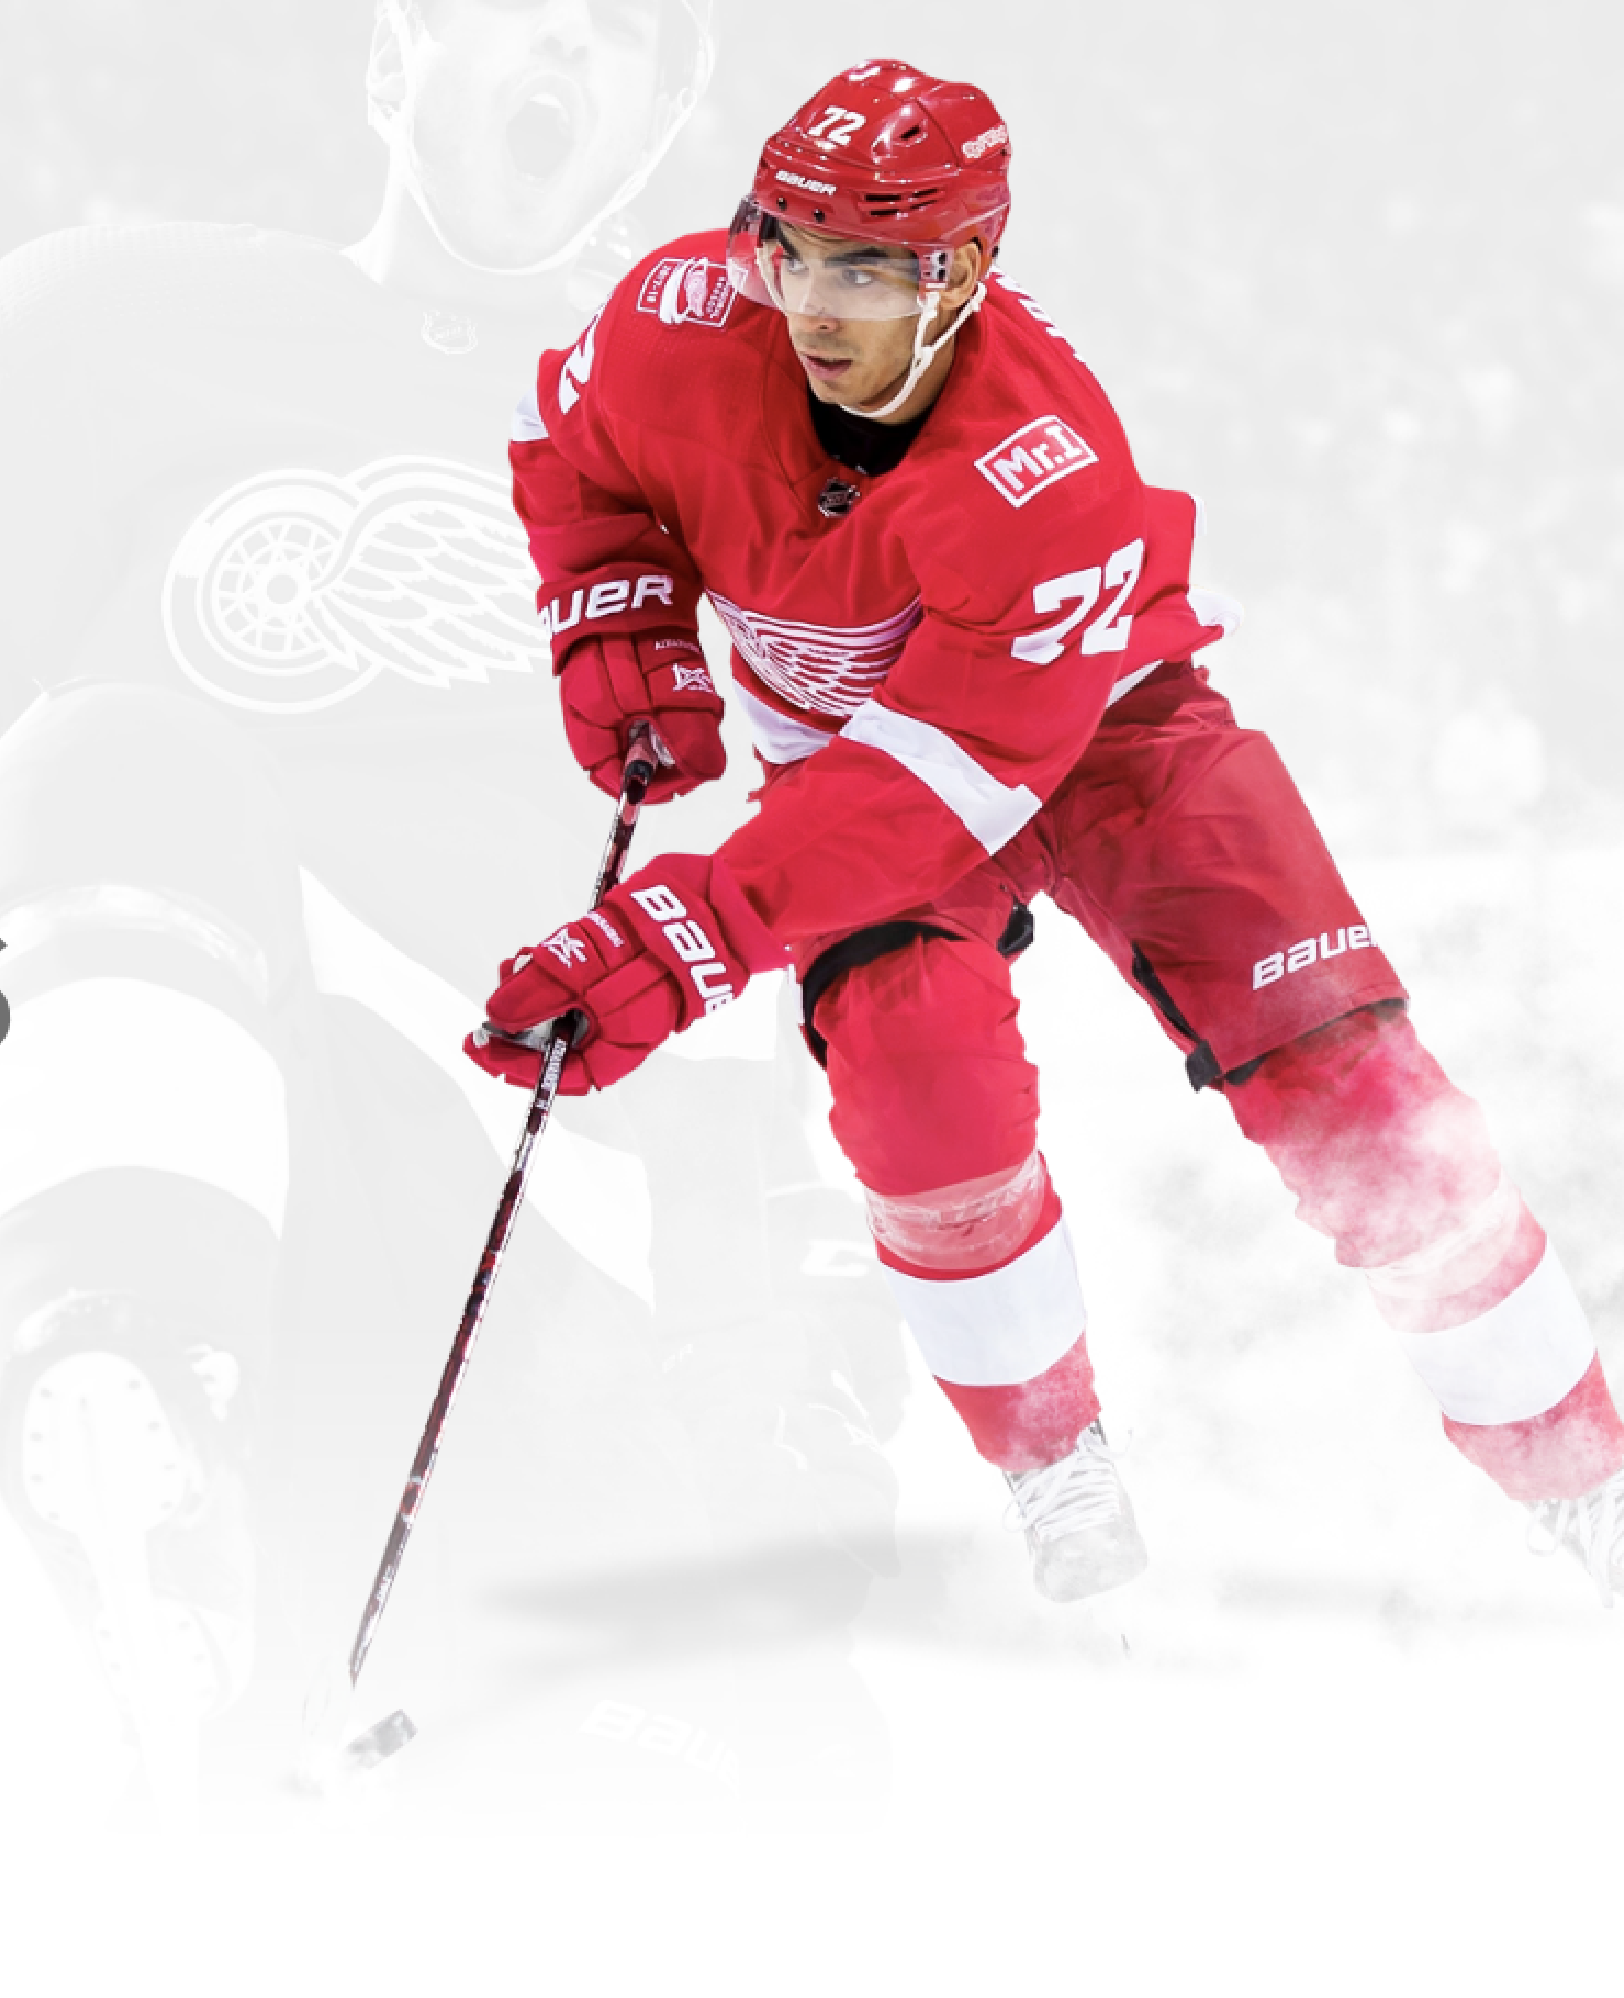 Image of Andreas Athanasiou of the NHL team Detroit Red Wings on a greyed out image of him in the background.